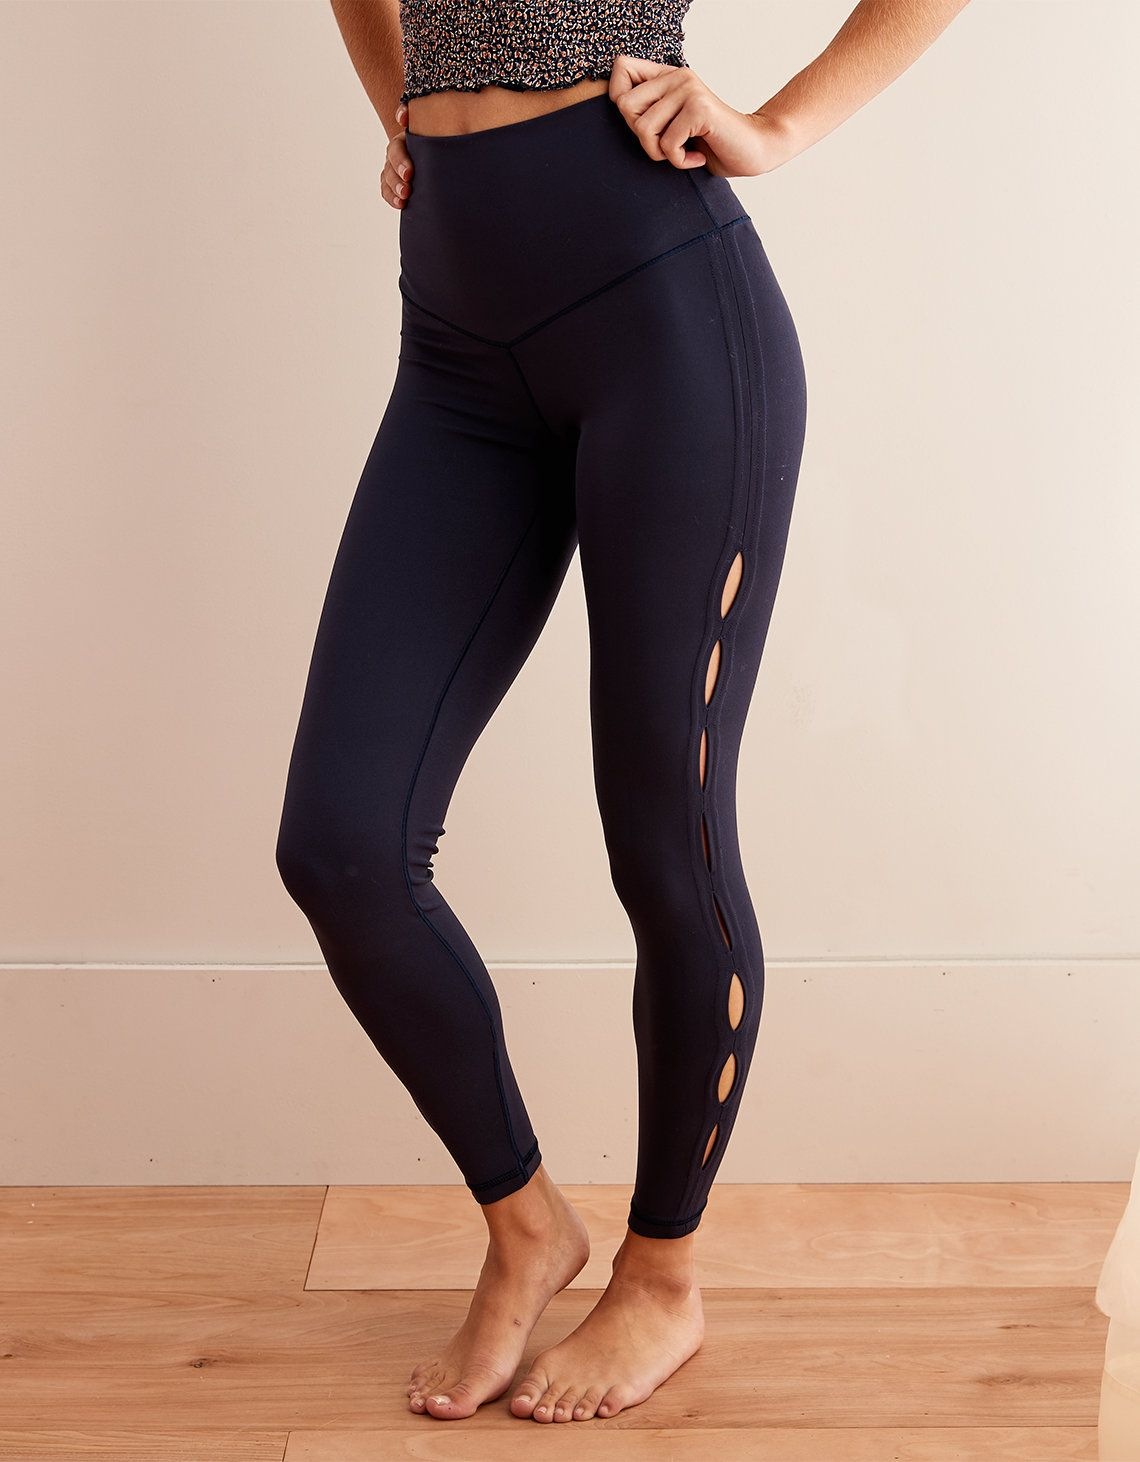 ff0104c3ef4d7d Aerie Play High Waisted Keyhole 7/8 Legging | Chill. Play. Move. in ...